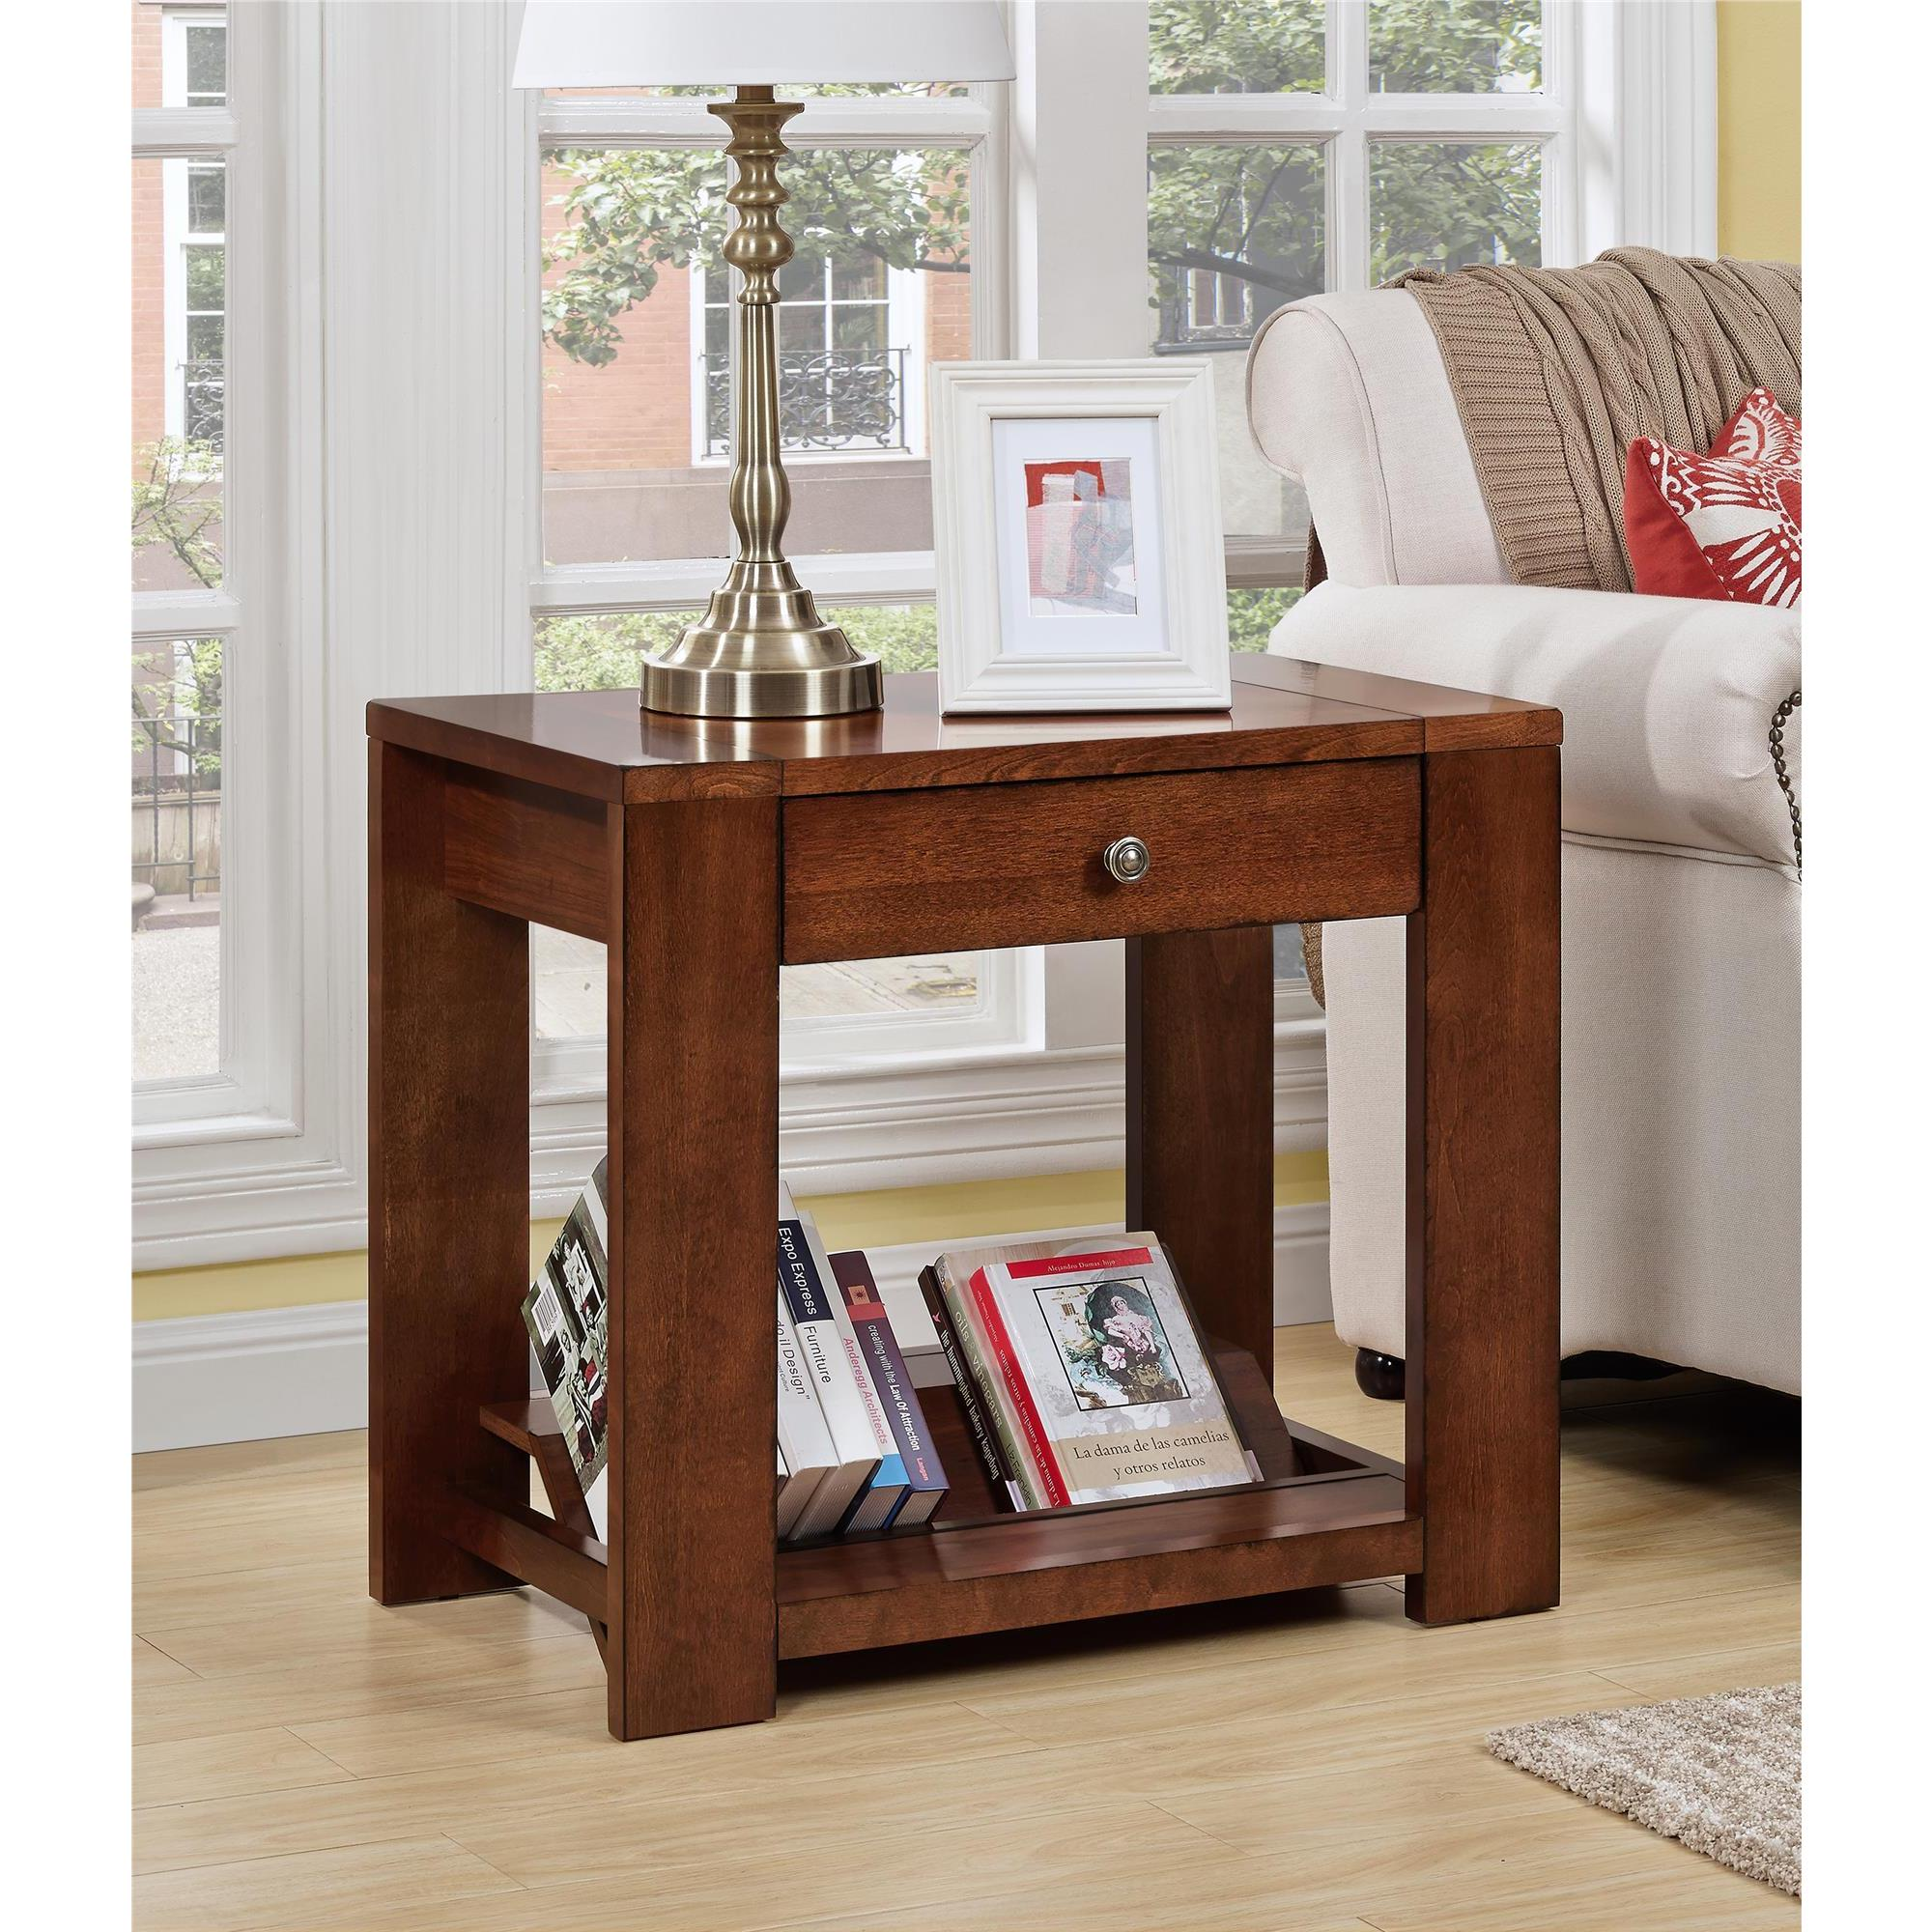 Shop Ameriwood Home Vermont Farmhouse Accent Table Free Shipping - Vermont farm table reviews